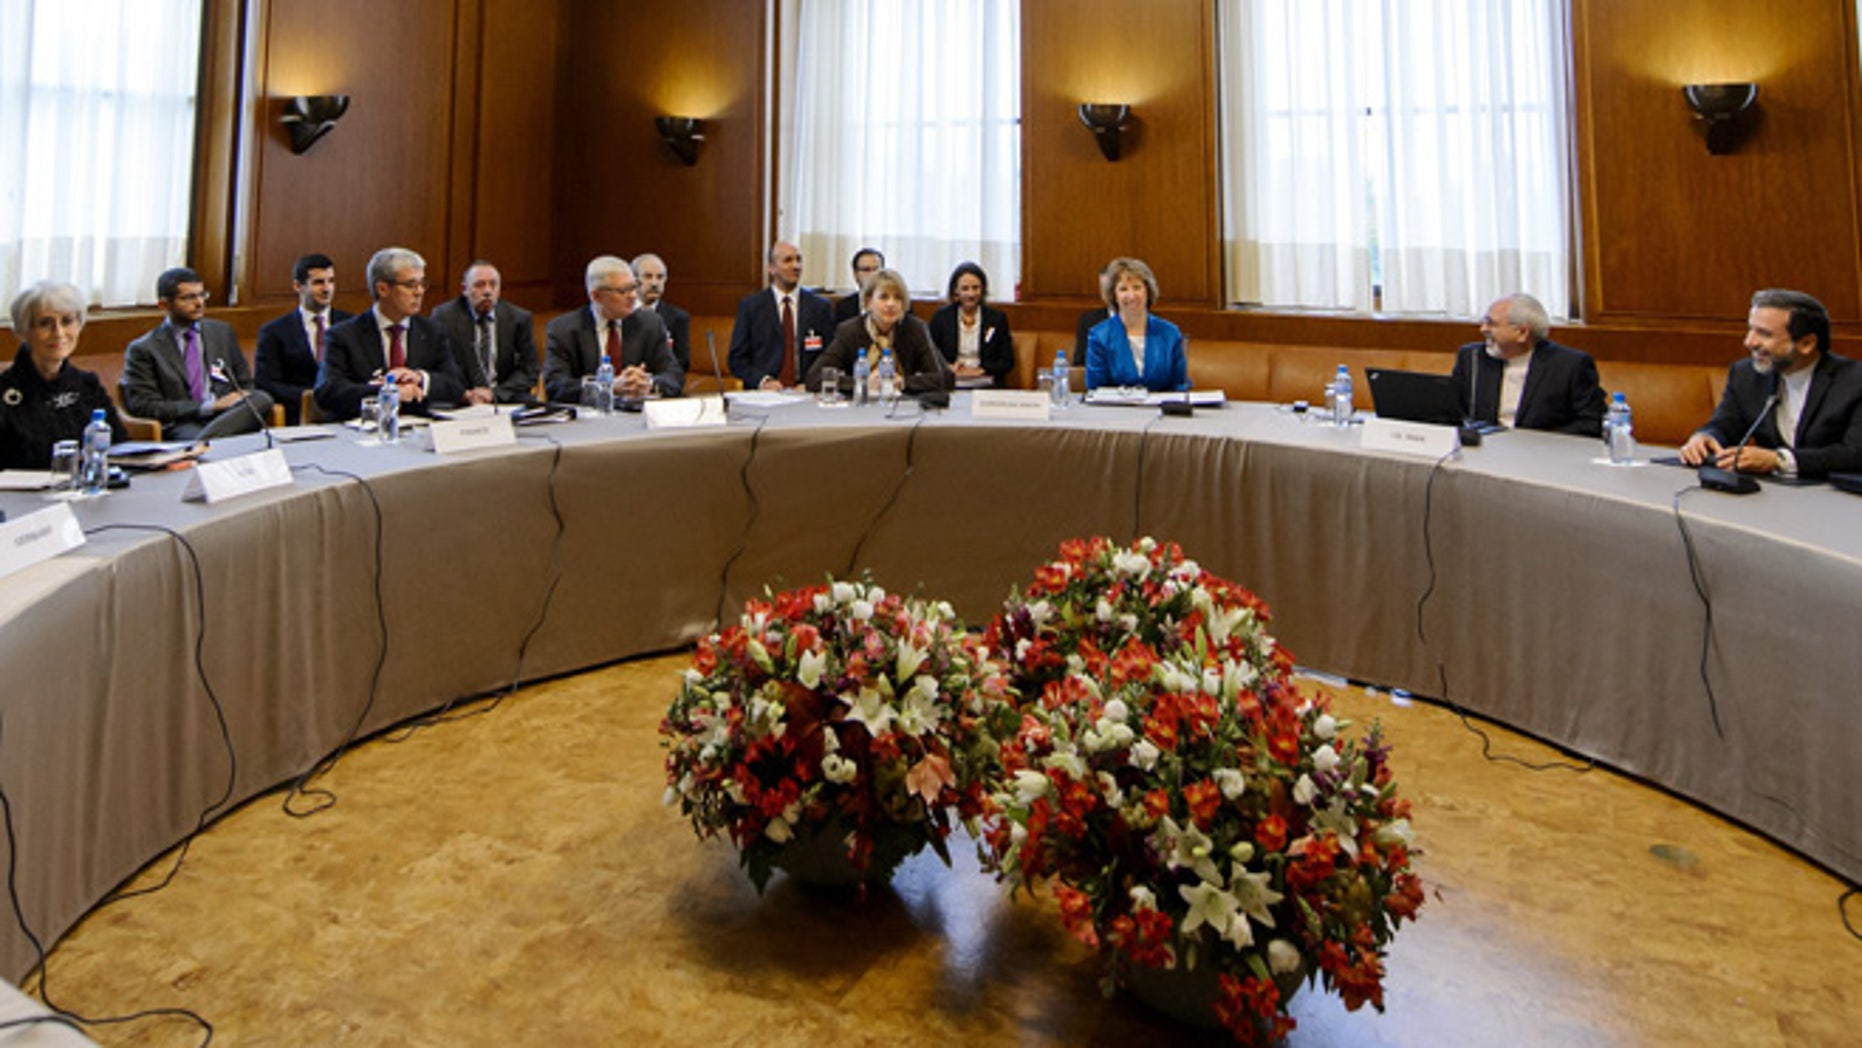 Oct. 15, 2013: A general view prior to the start of the two days of closed-door nuclear talks at the United Nations offices in Geneva, Switzerland.